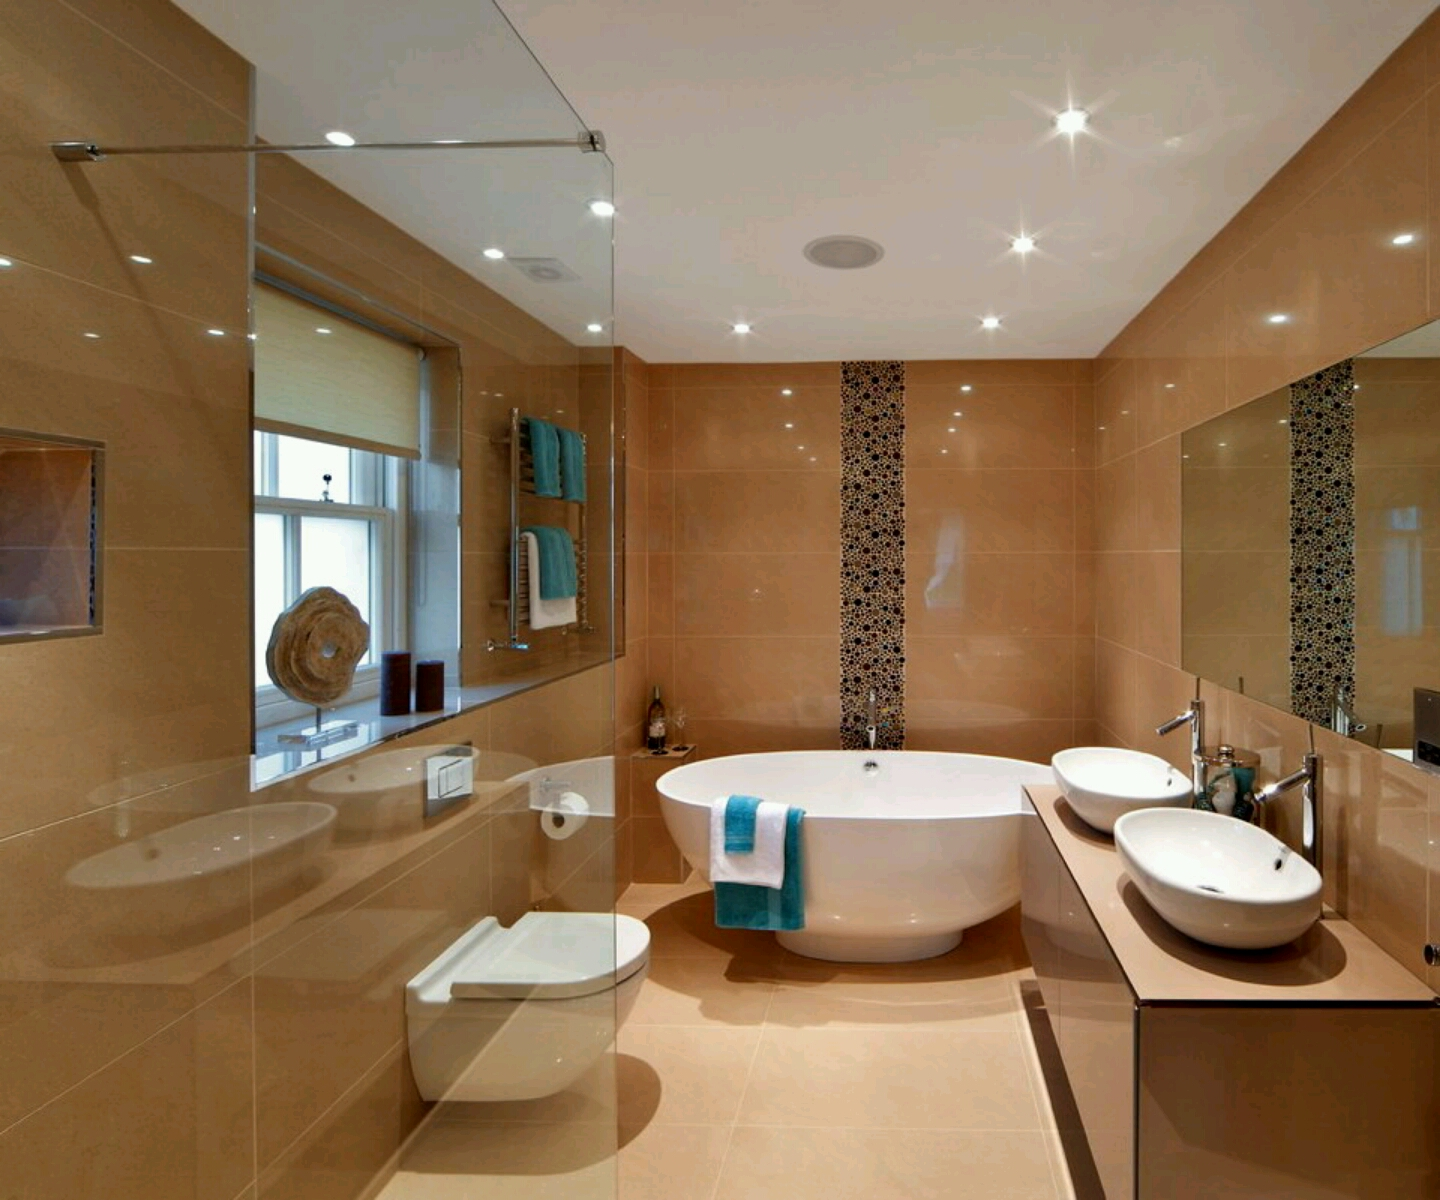 New home designs latest luxury modern bathrooms designs for House bathroom ideas